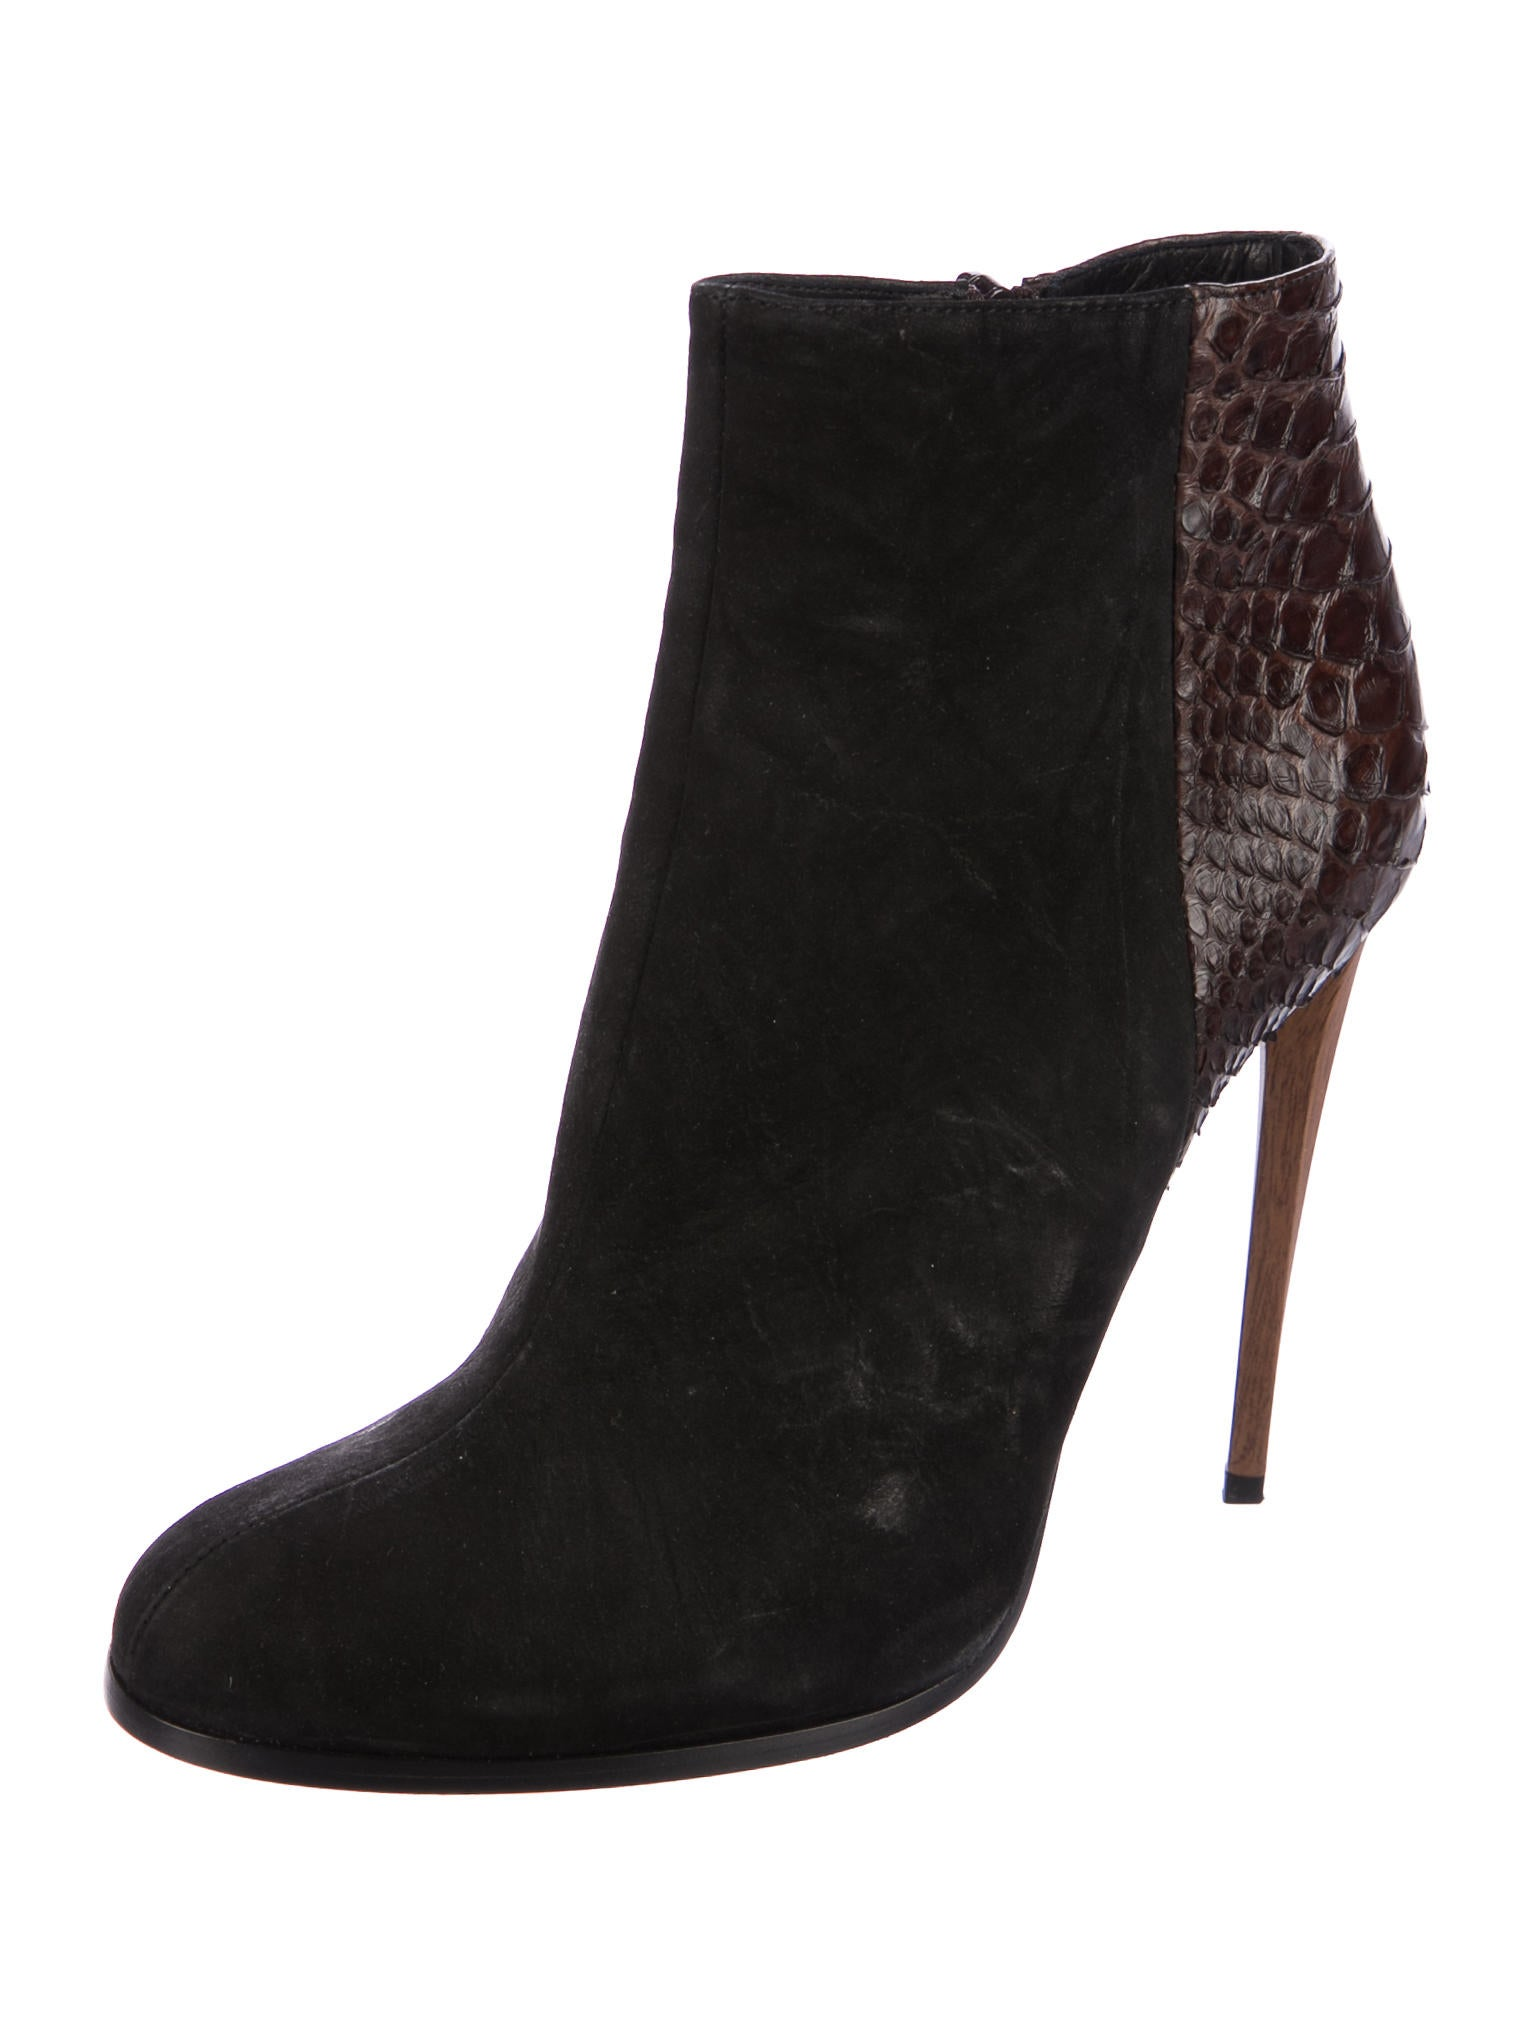 Haider Ackermann Python Round-Toe Ankle Boots browse for sale outlet order buy cheap tumblr qHb0ddTd